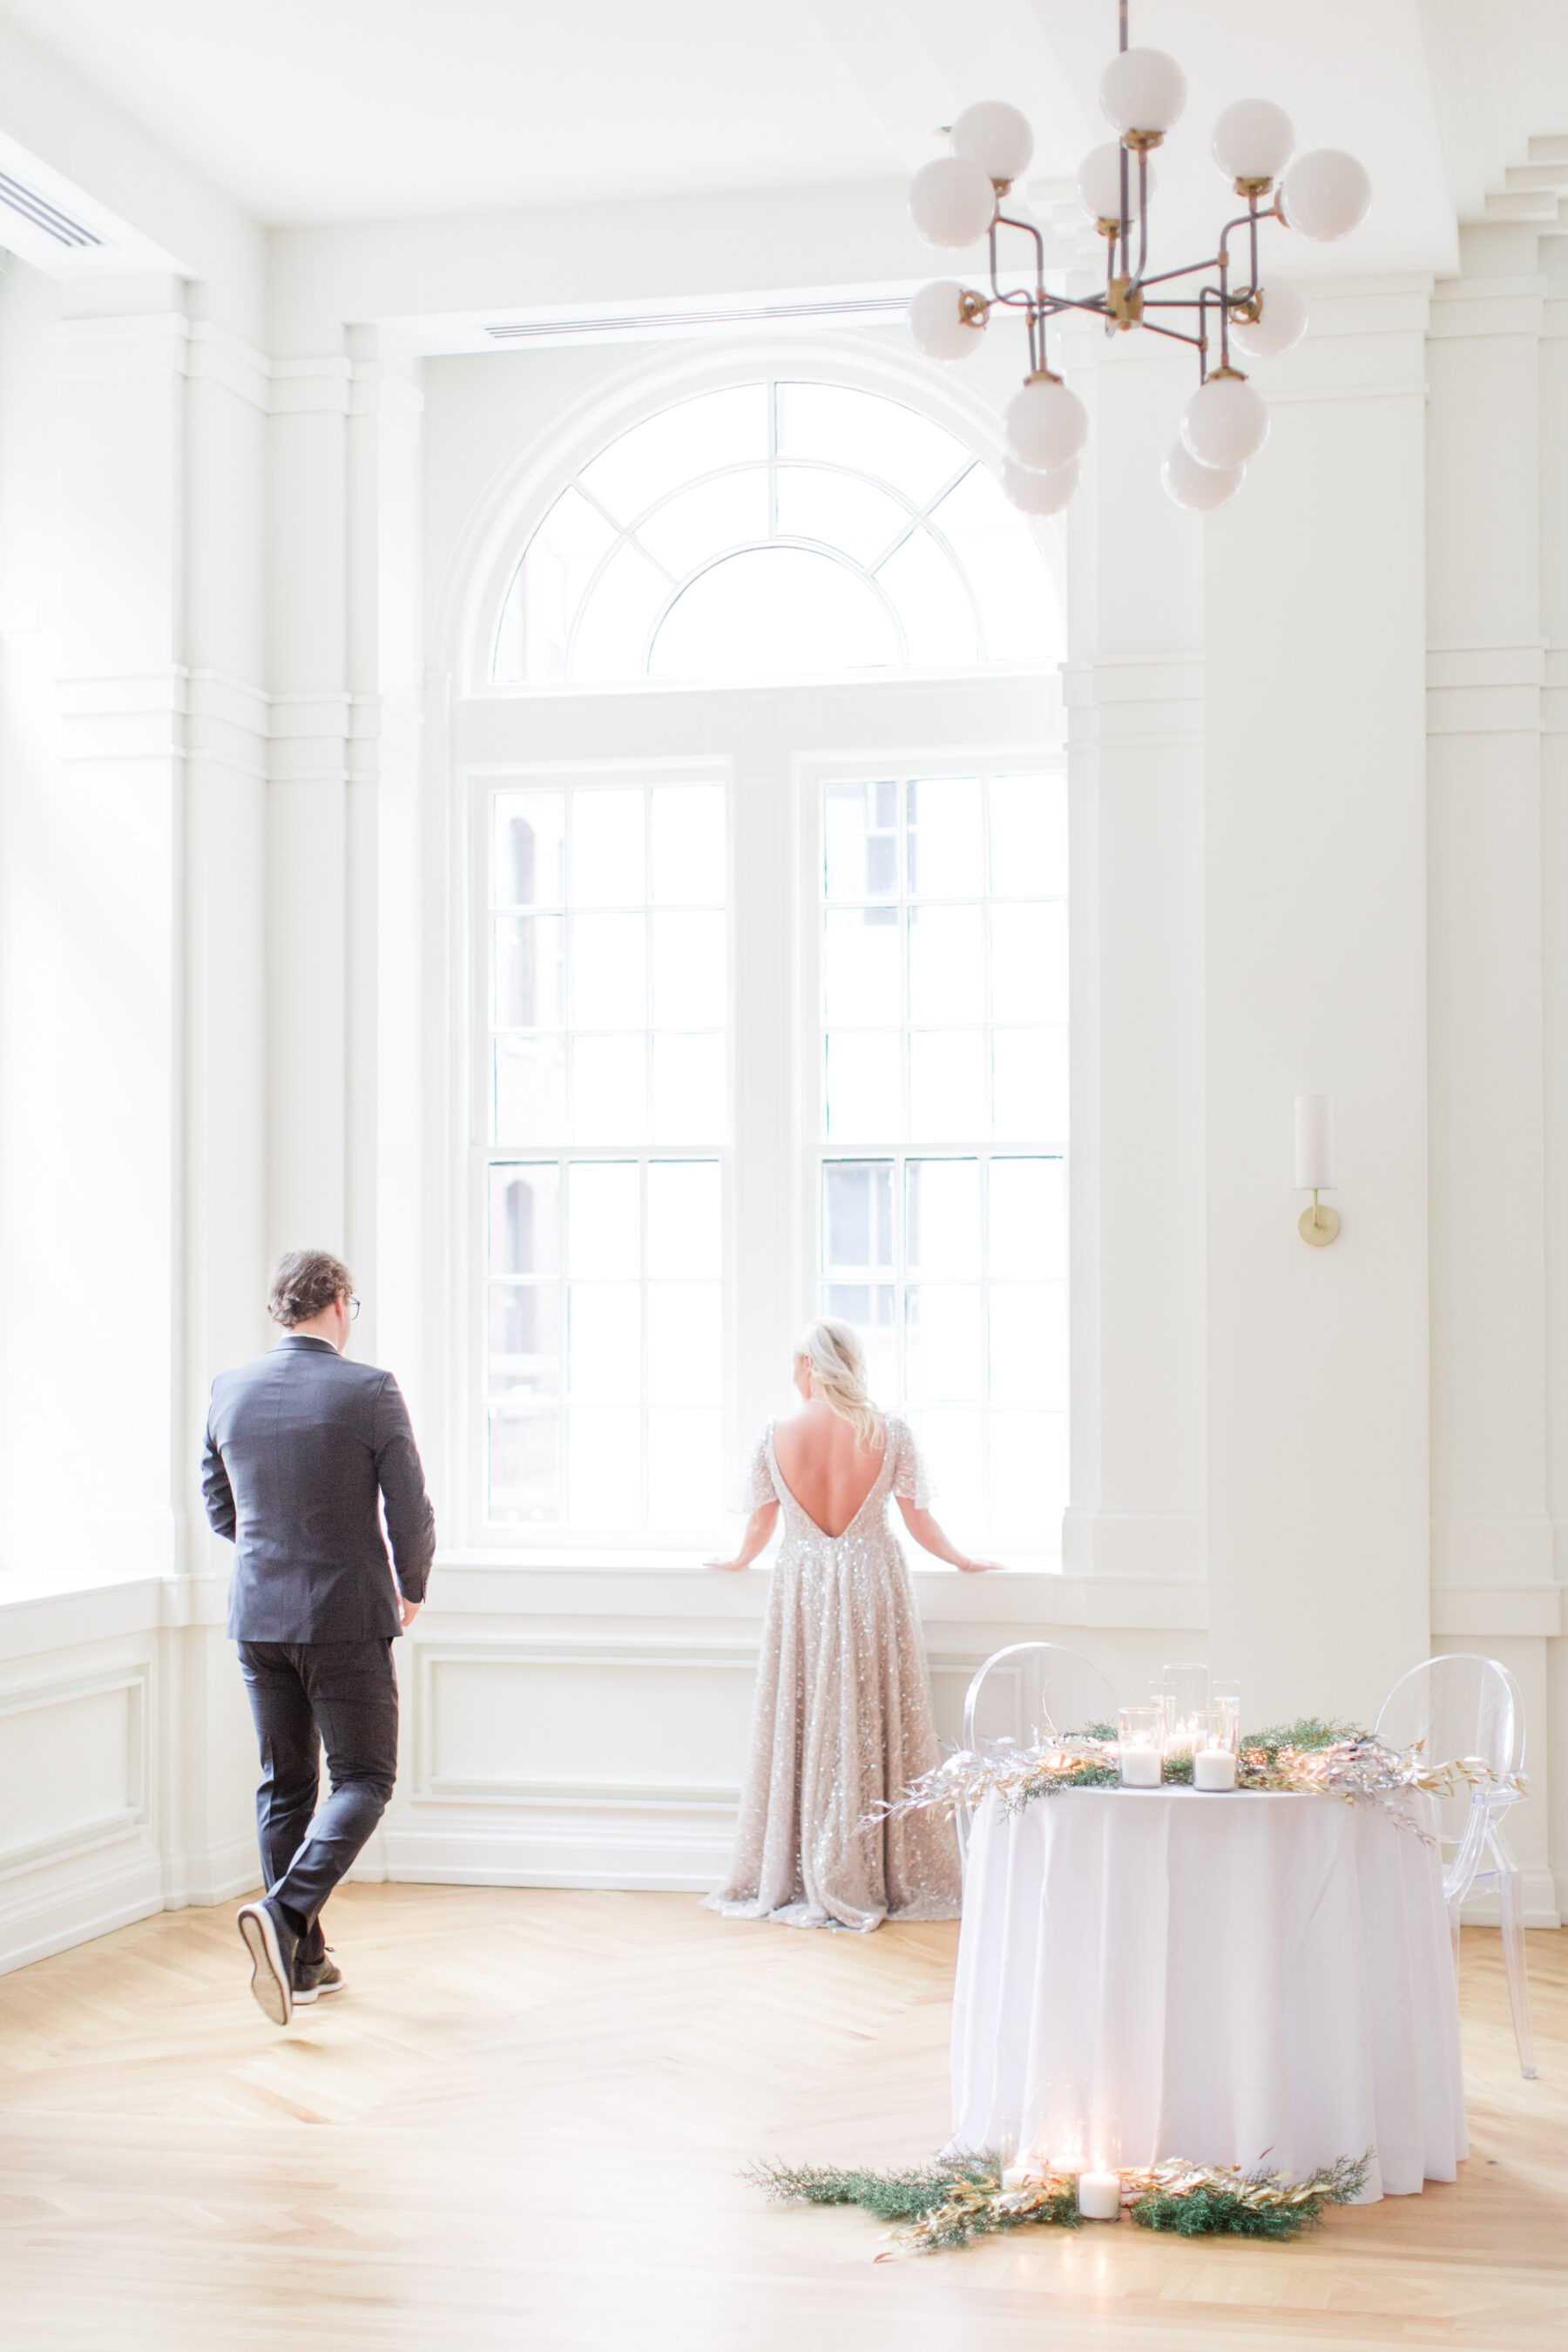 First look inspiration: Classic, Yet Modern New Years Eve Wedding Inspiration featured on Nashville Bride Guide